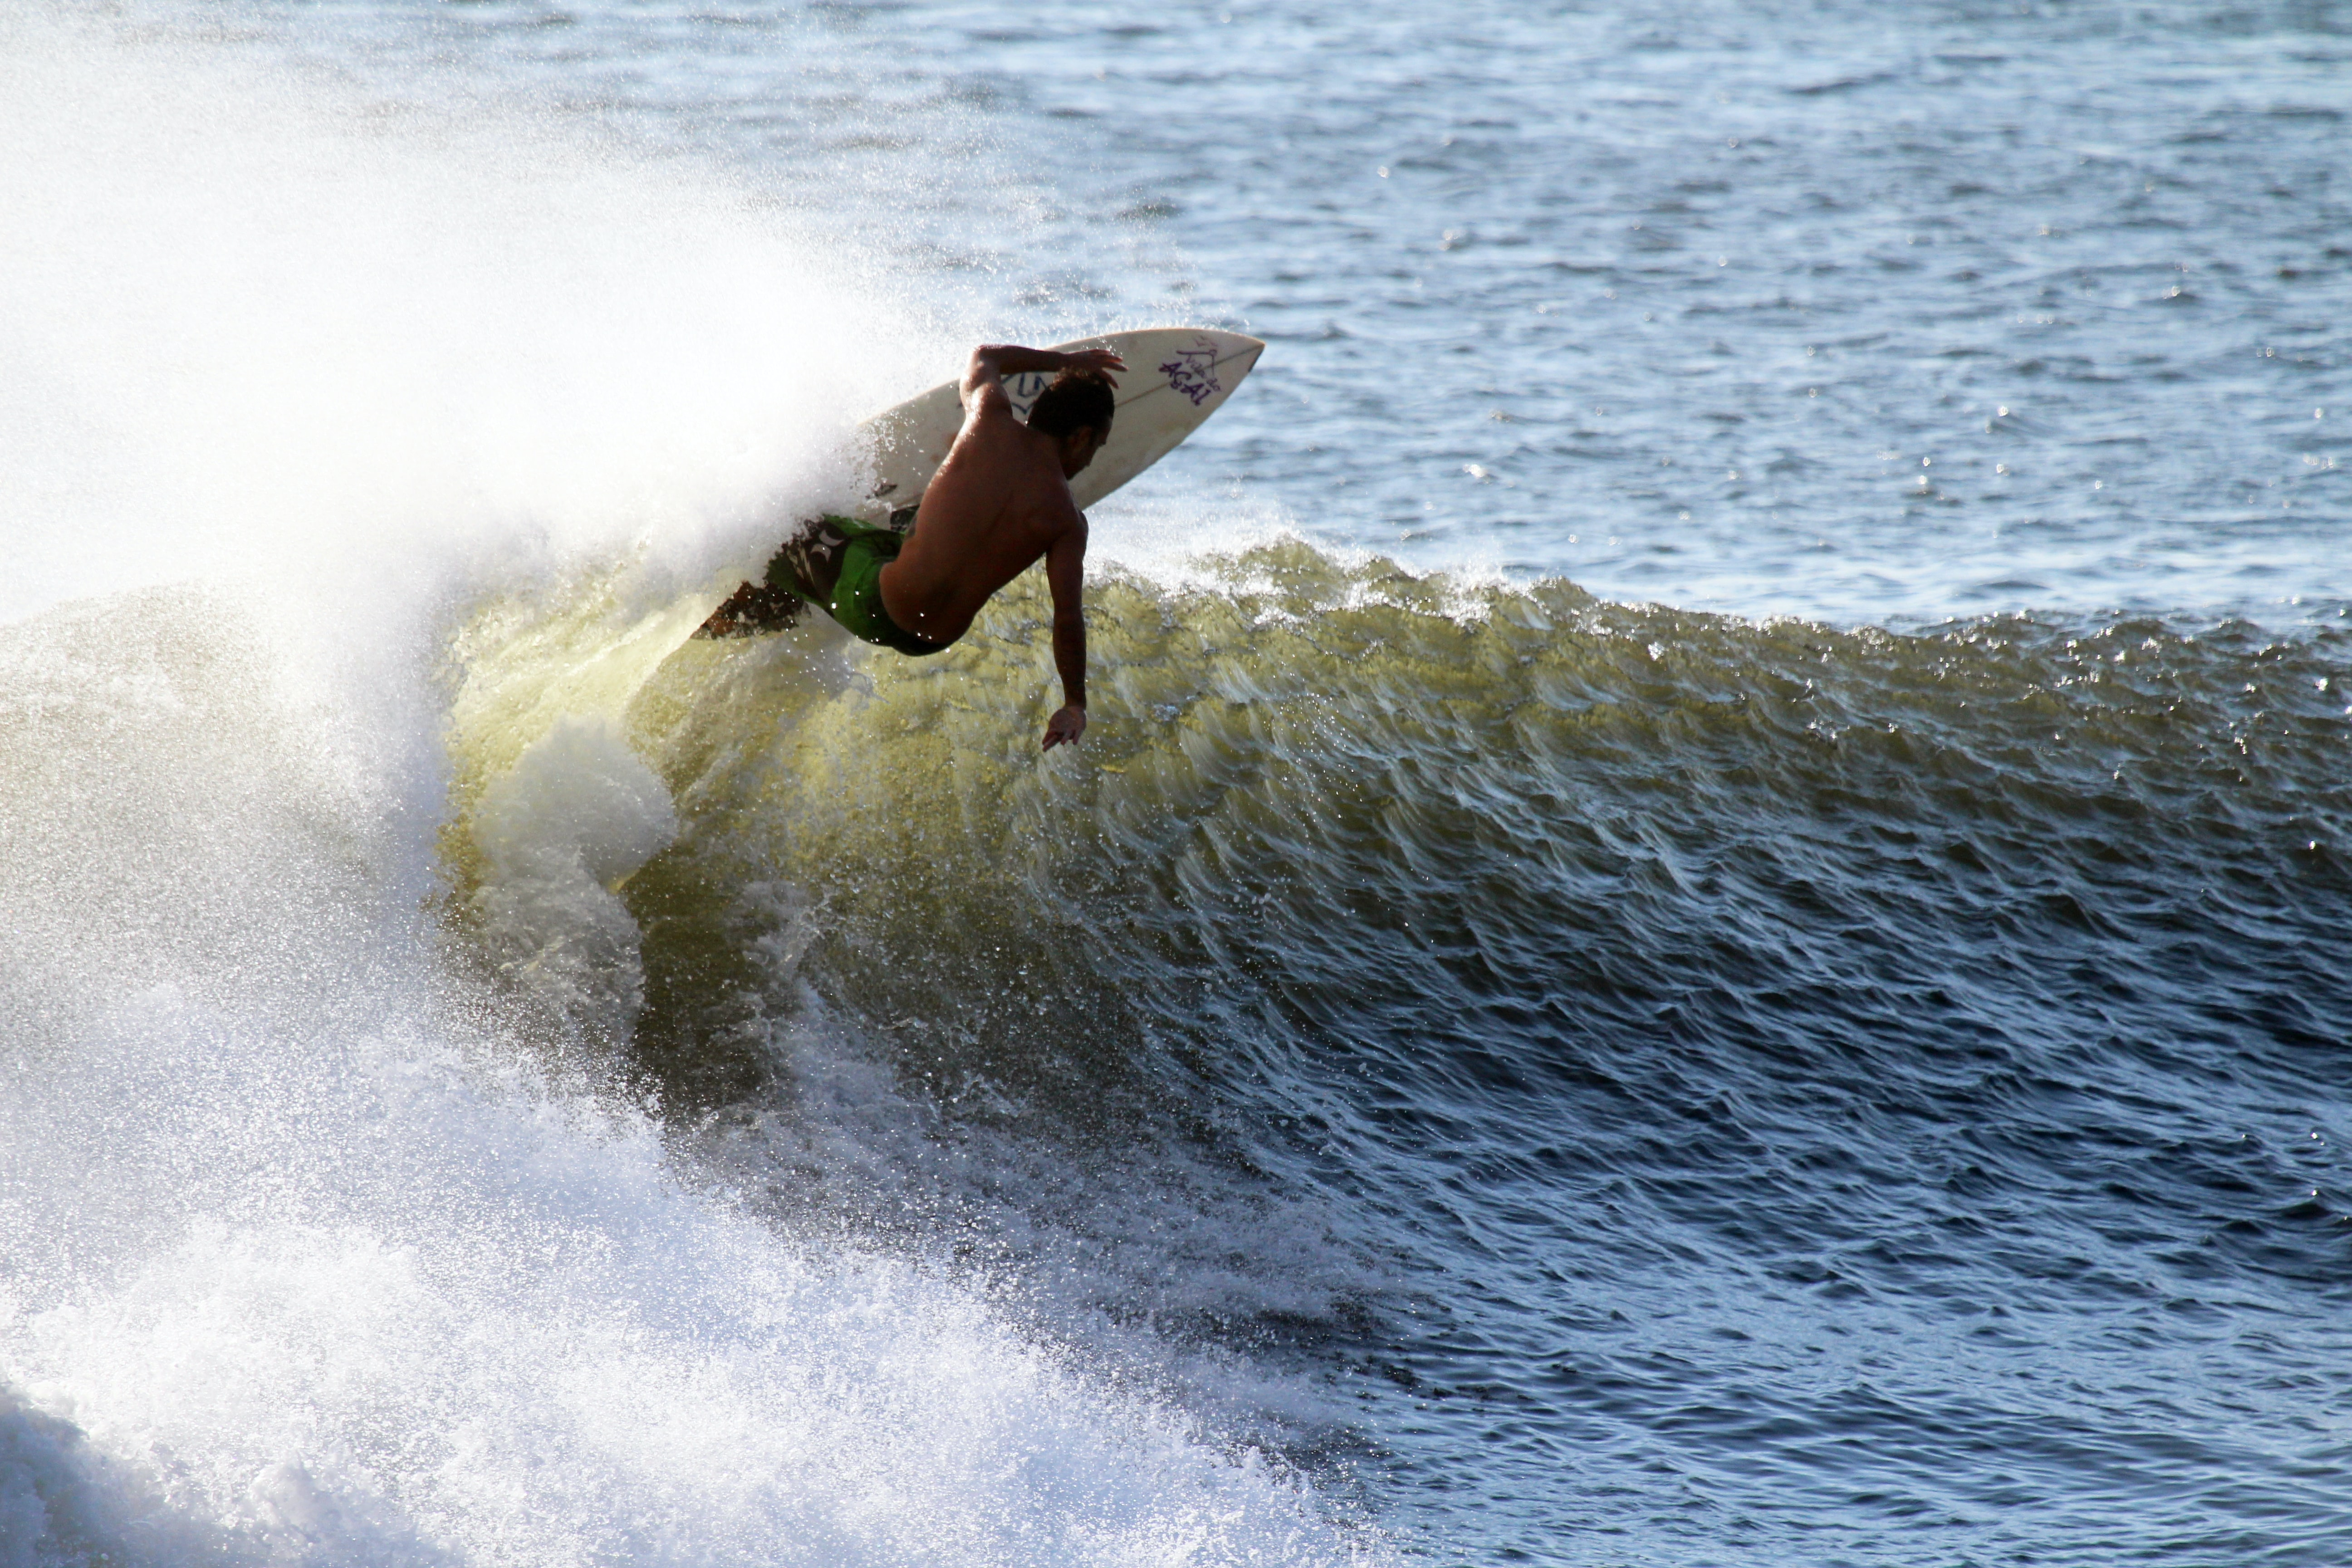 A surfer riding a white board, performing a trick on a rolling wave in the sea